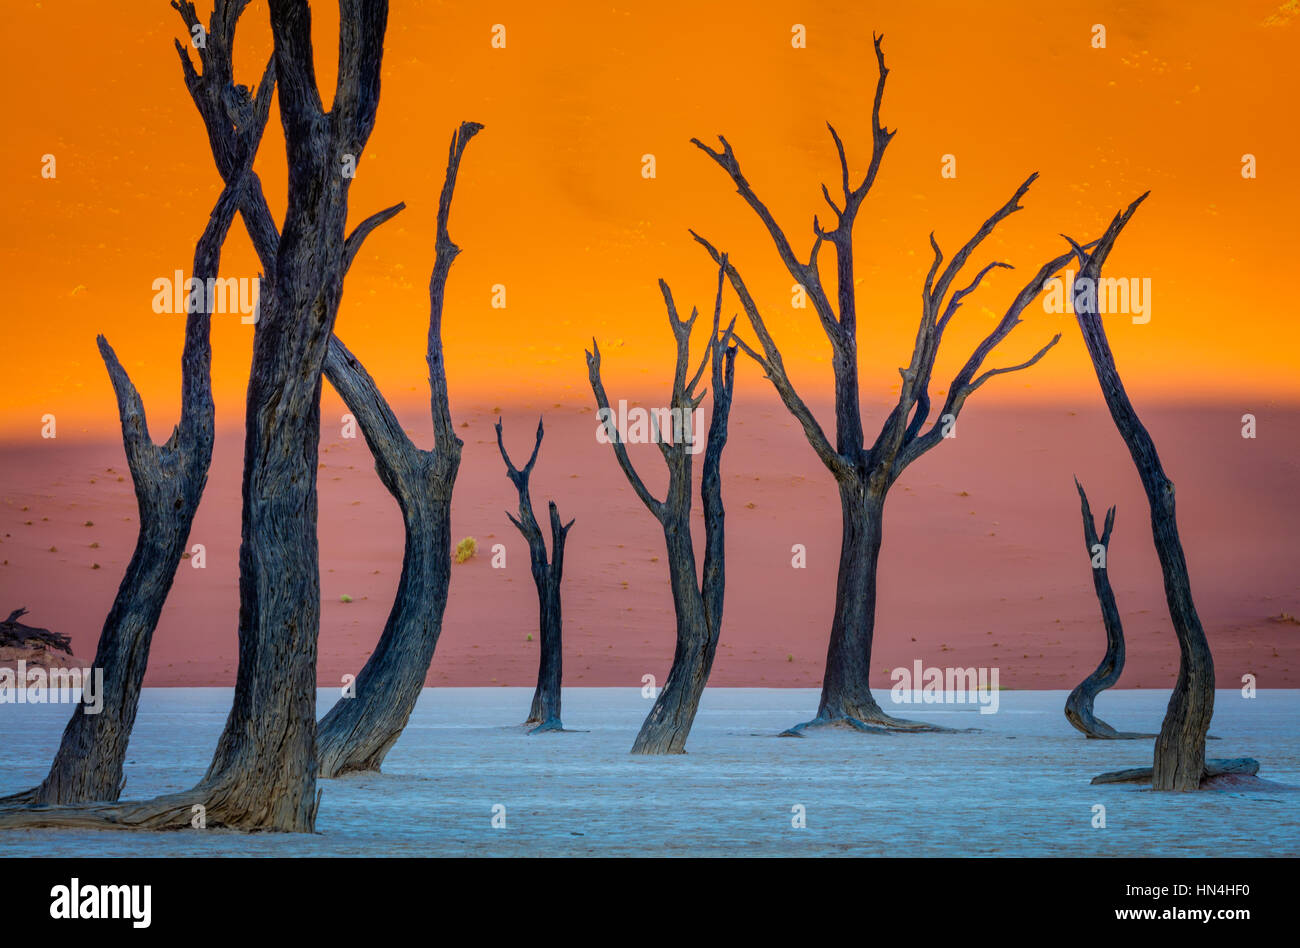 Deadvlei is a white clay pan located near the more famous salt pan of Sossusvlei, inside the Namib-Naukluft Park in Namibia. Stock Photo